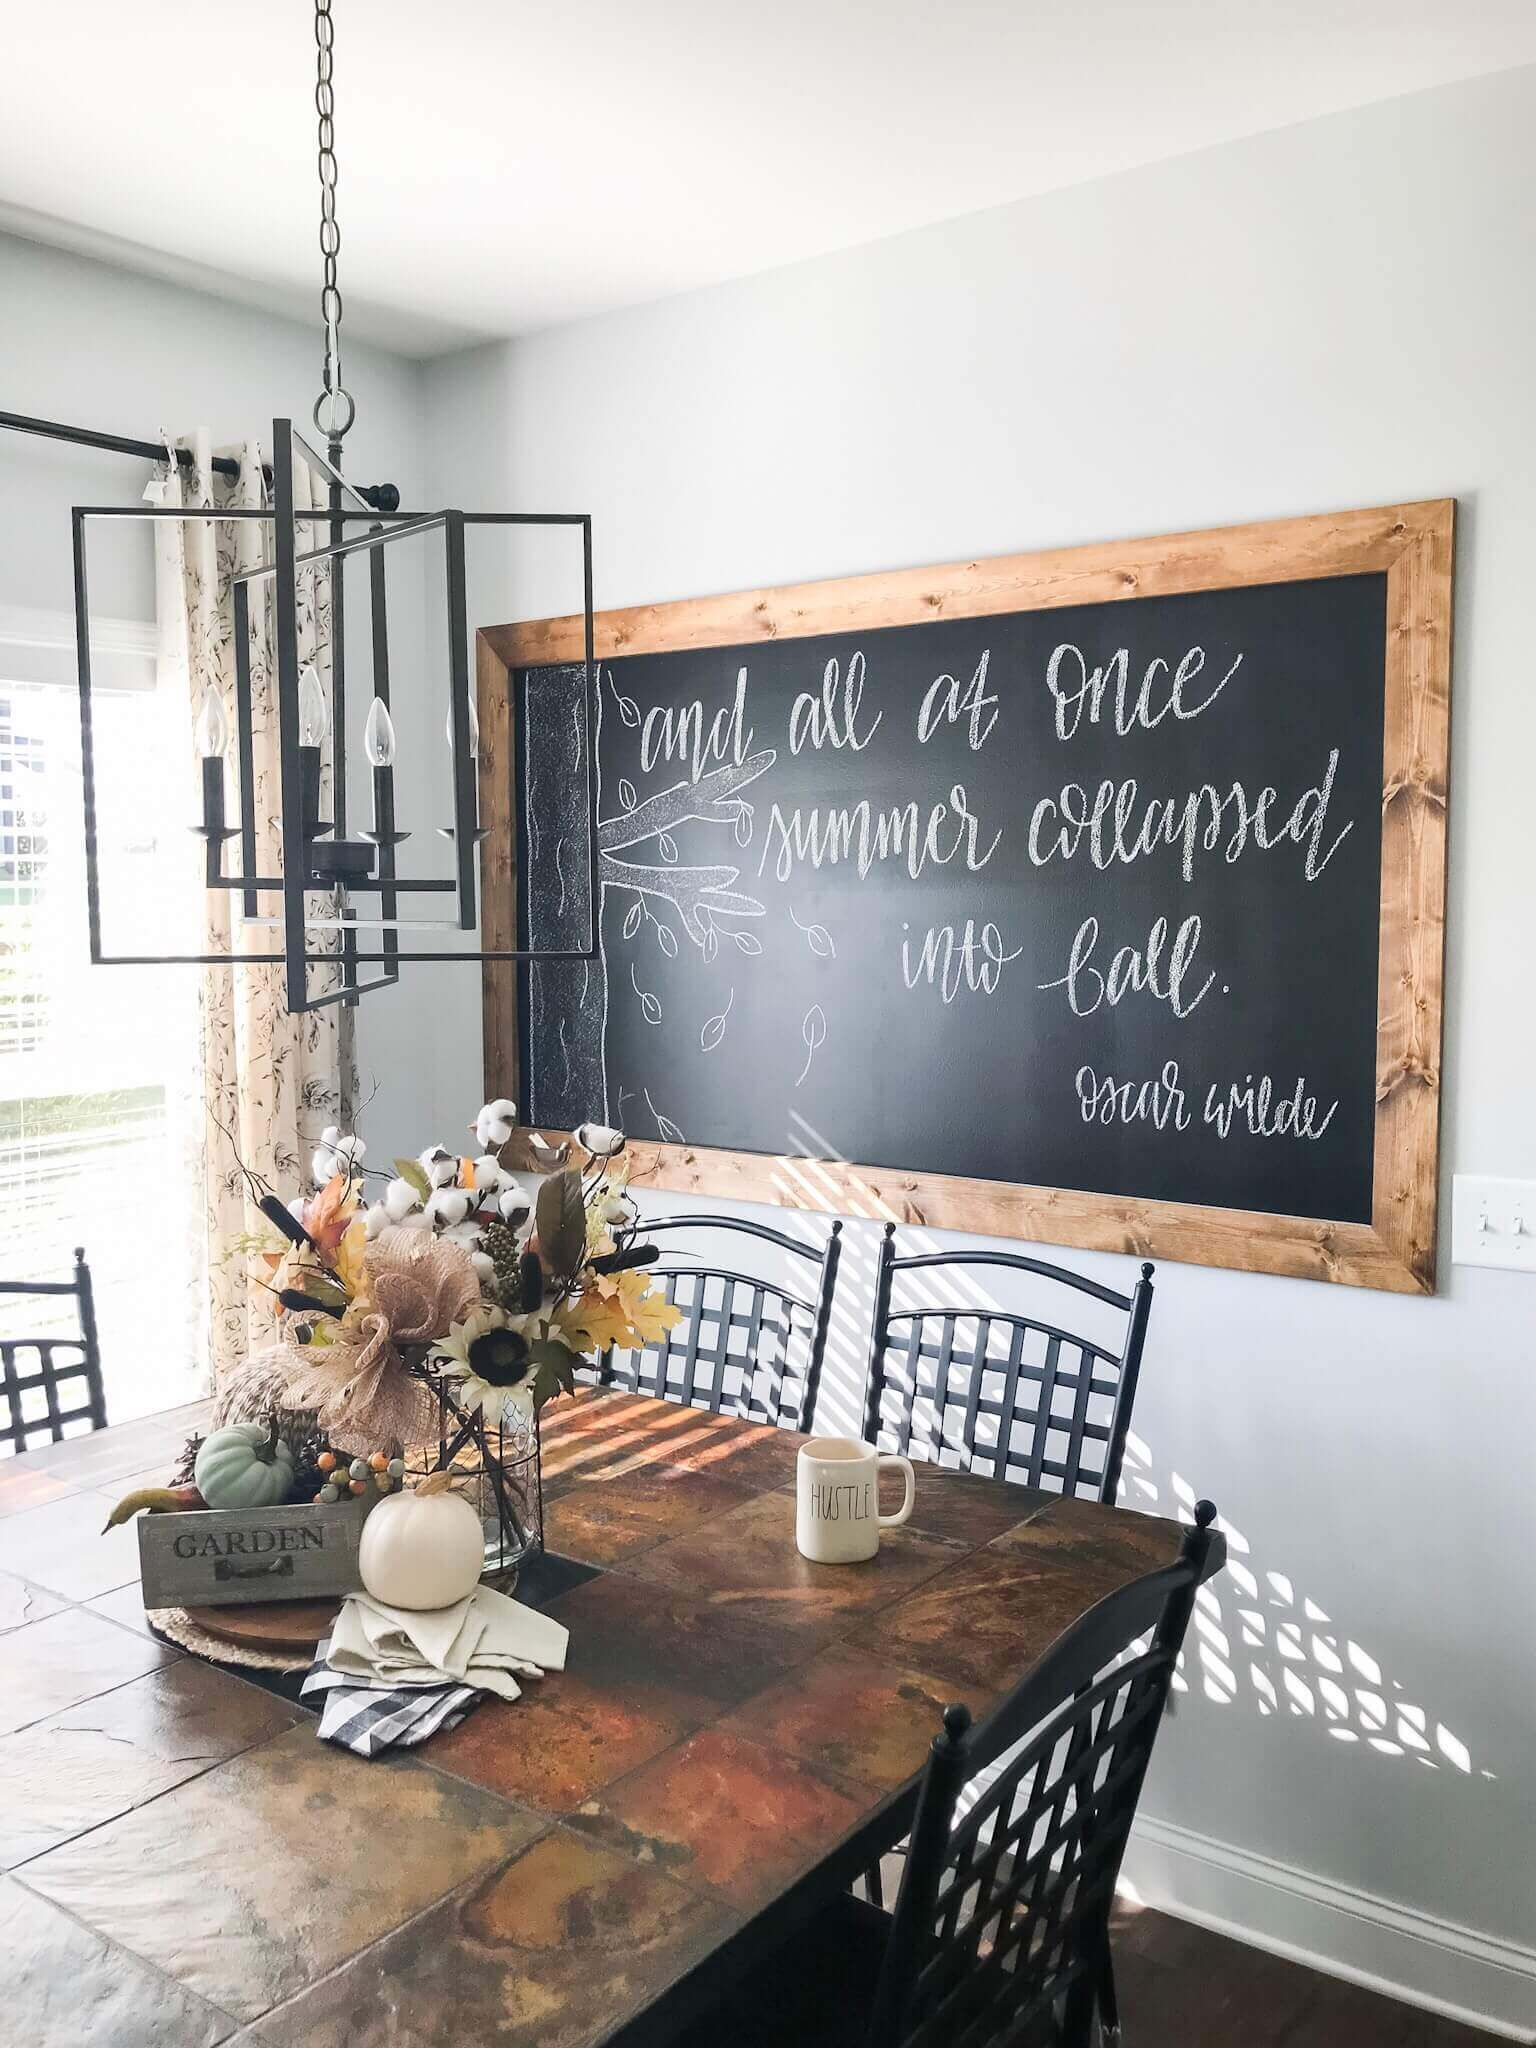 Diy Framed Chalkboard Wall Tutorial Framed Chalkboard Walls Chalkboard Wall Kitchen Baby Room Wall Decor